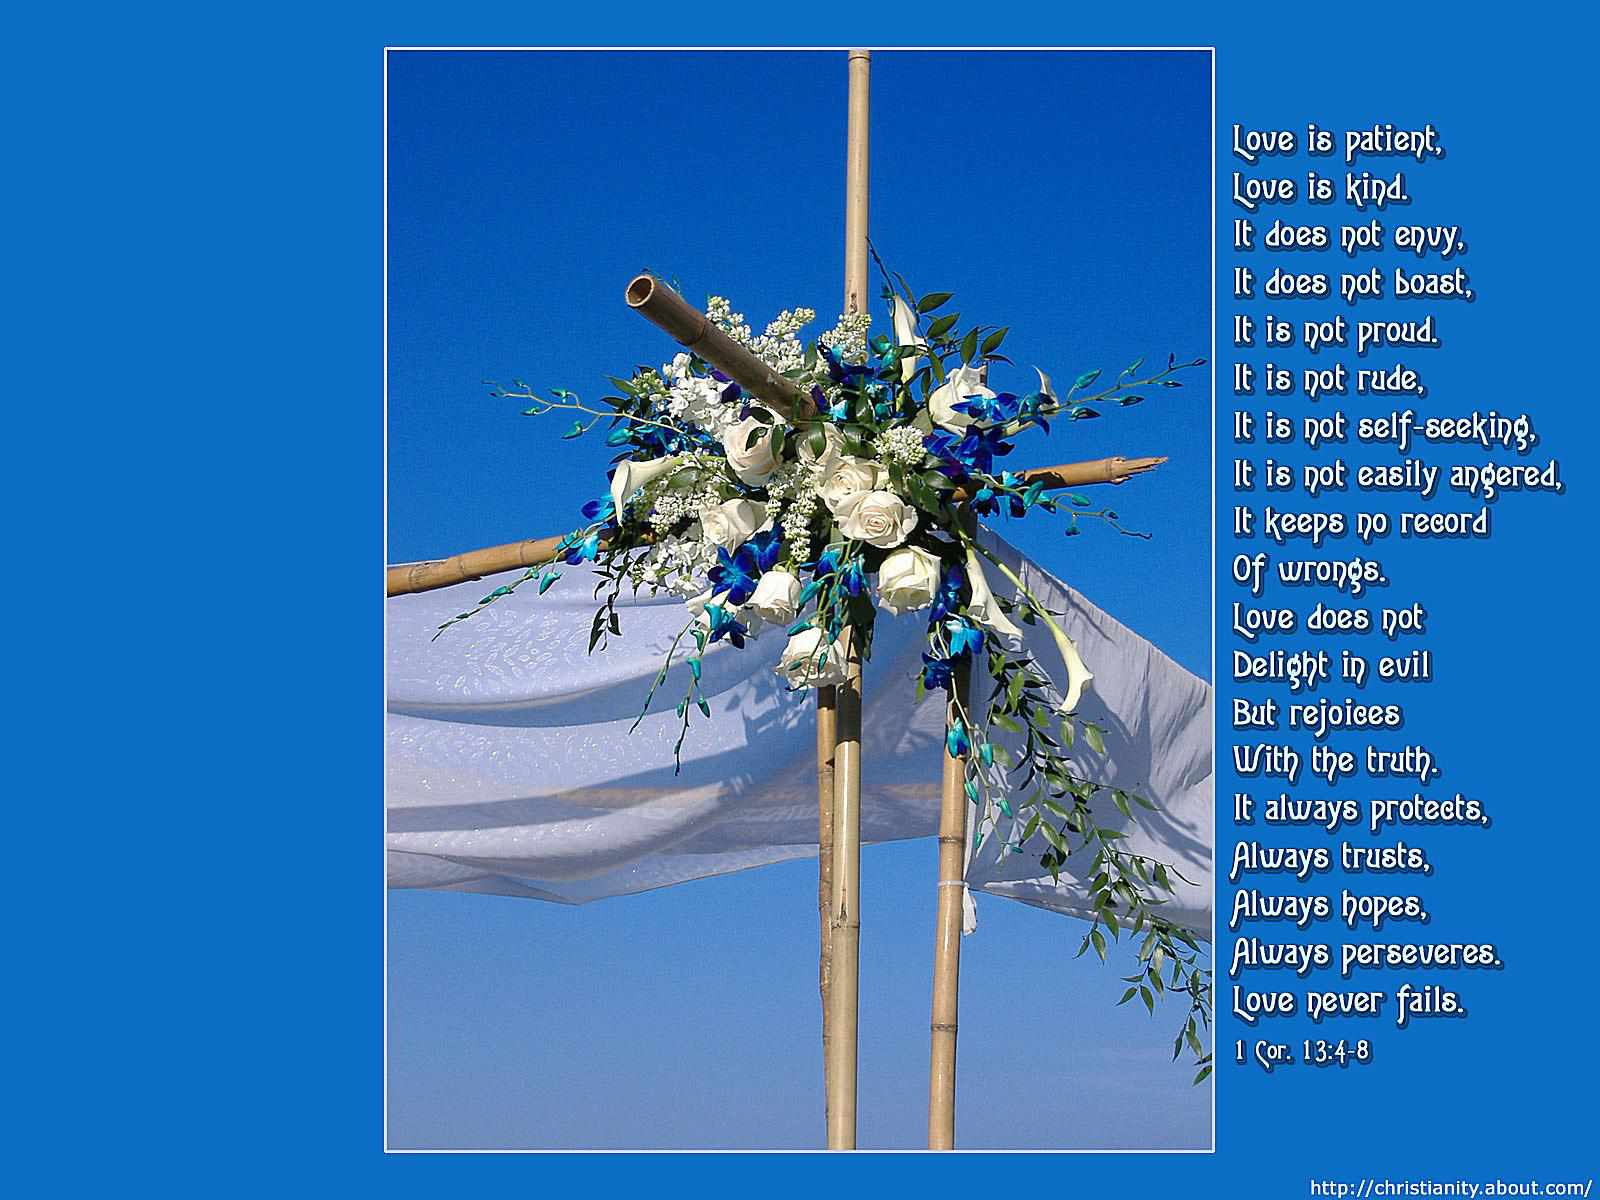 Wedding Reading Love Is Patient: Free Christian Wallpaper With Bible Verses To Download